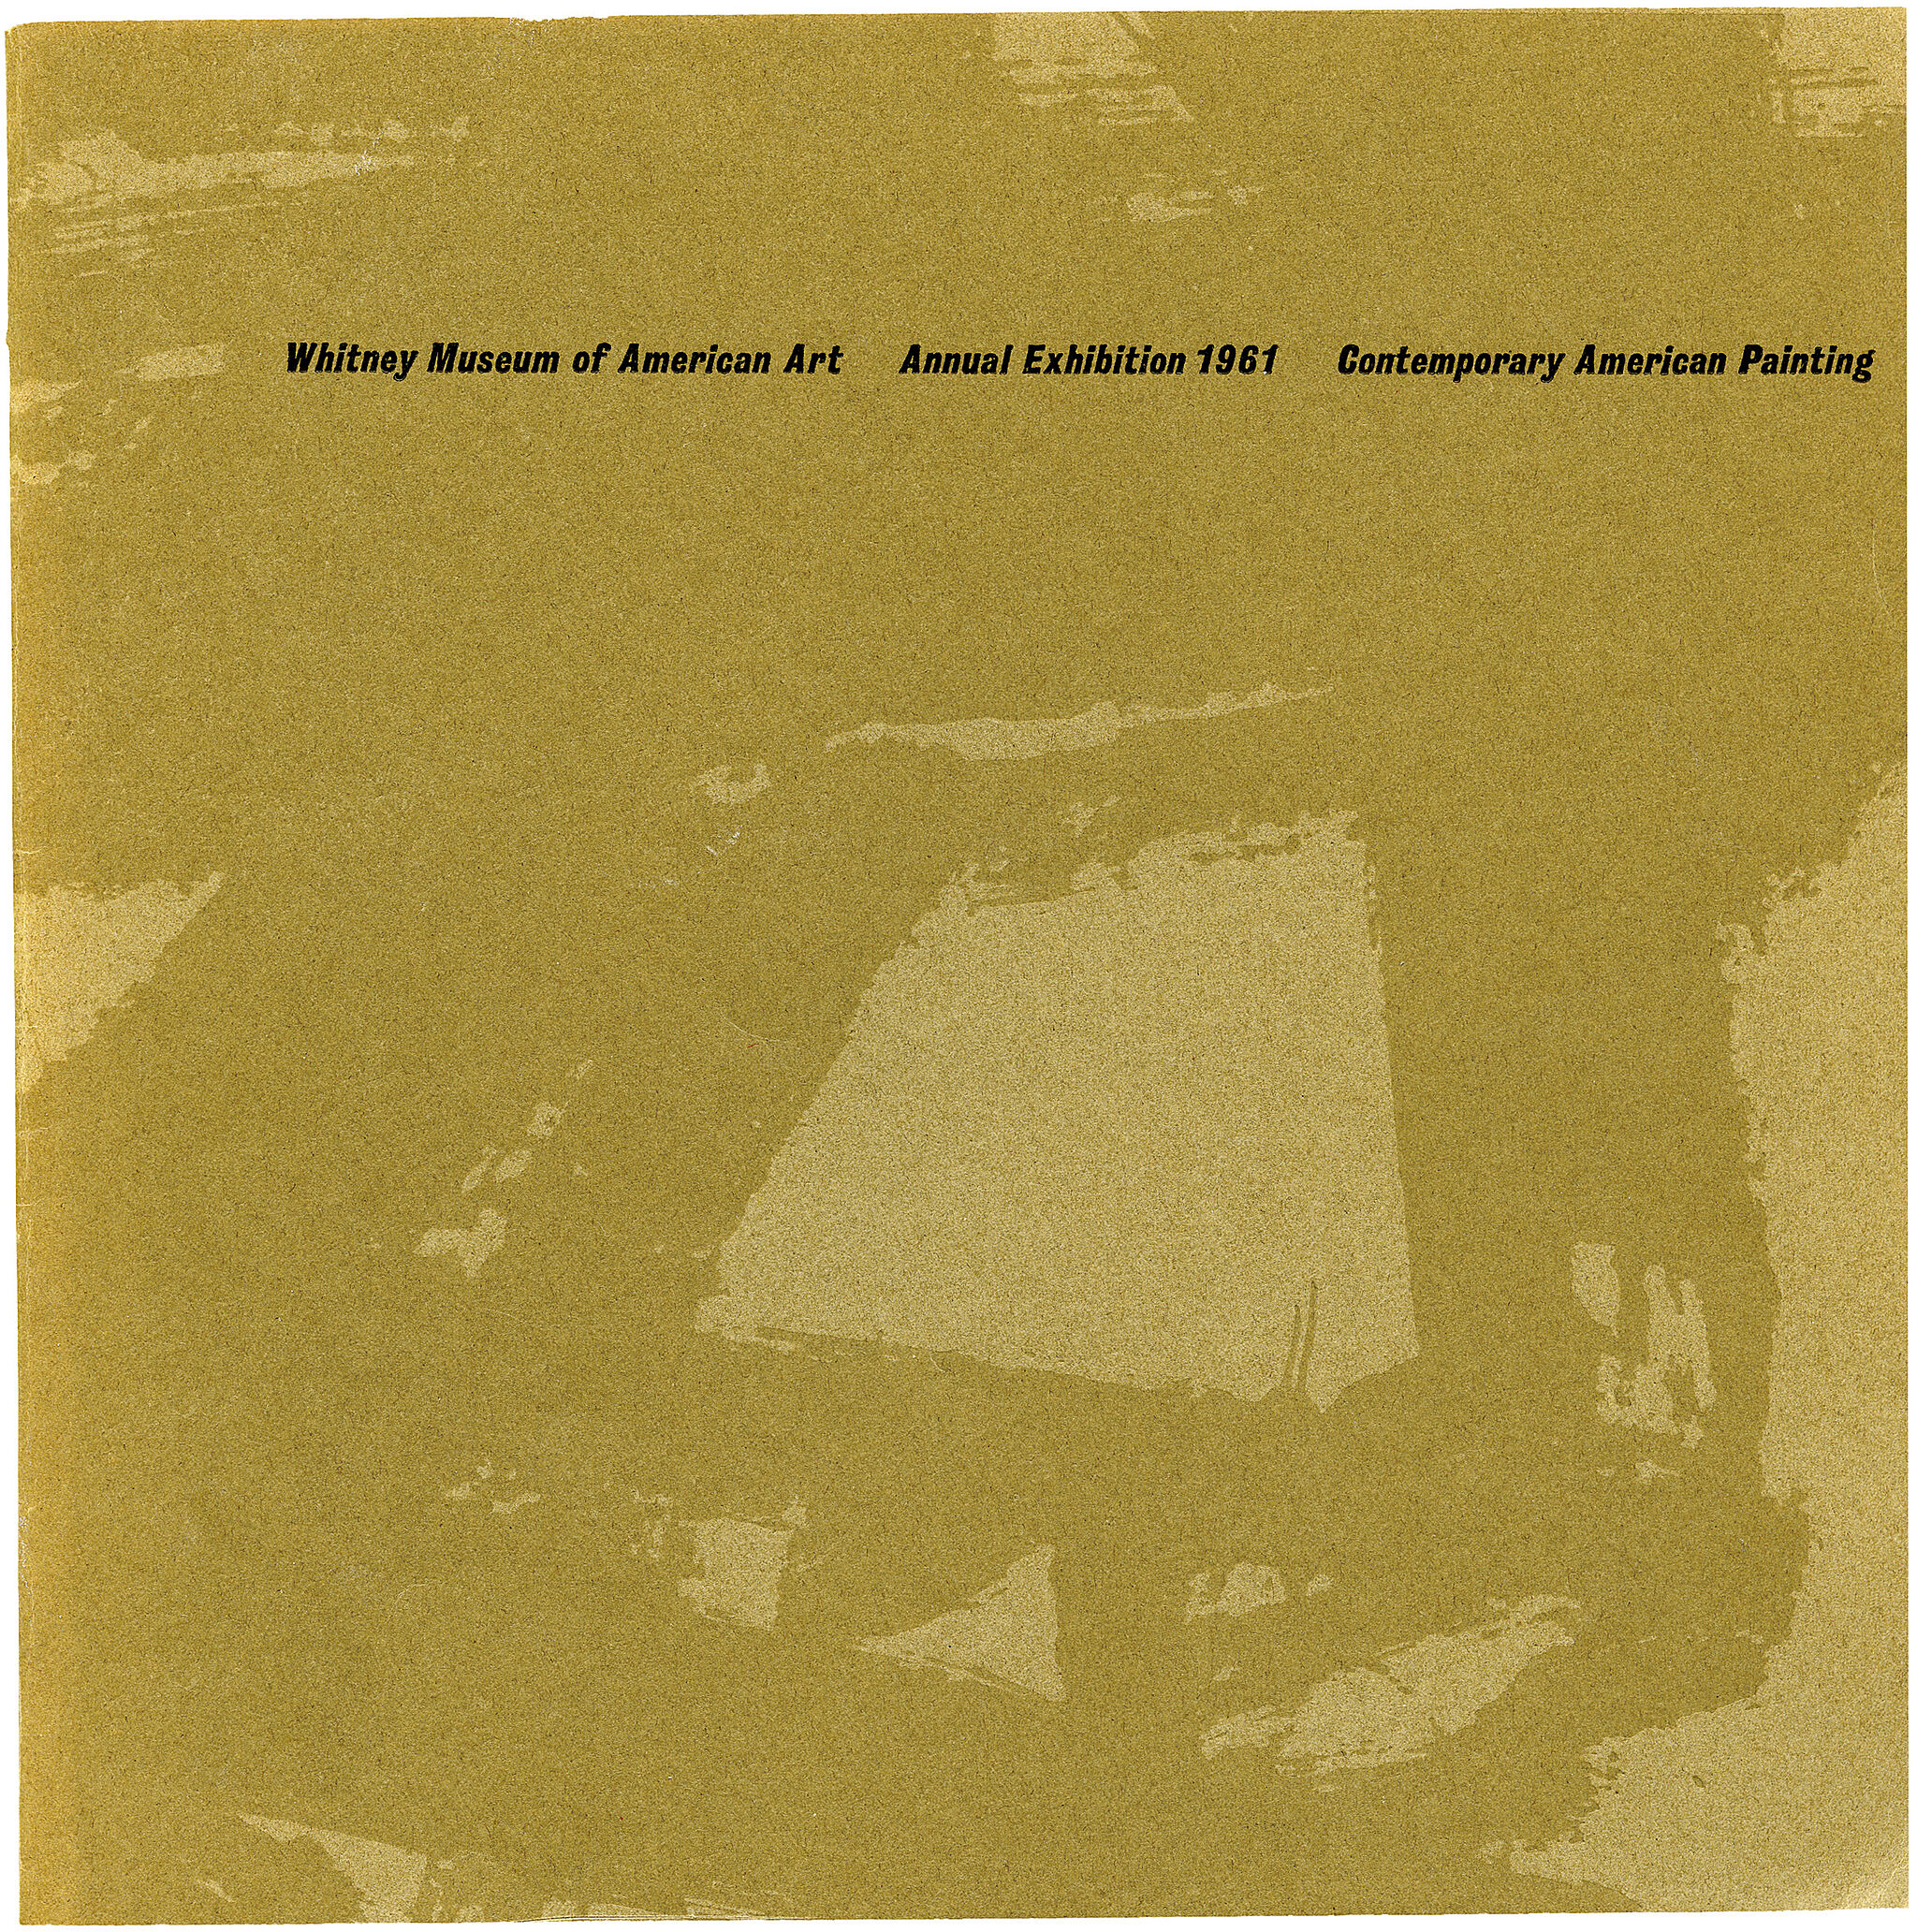 Catalogue cover for Annual Exhibition 1961: Contemporary American Painting